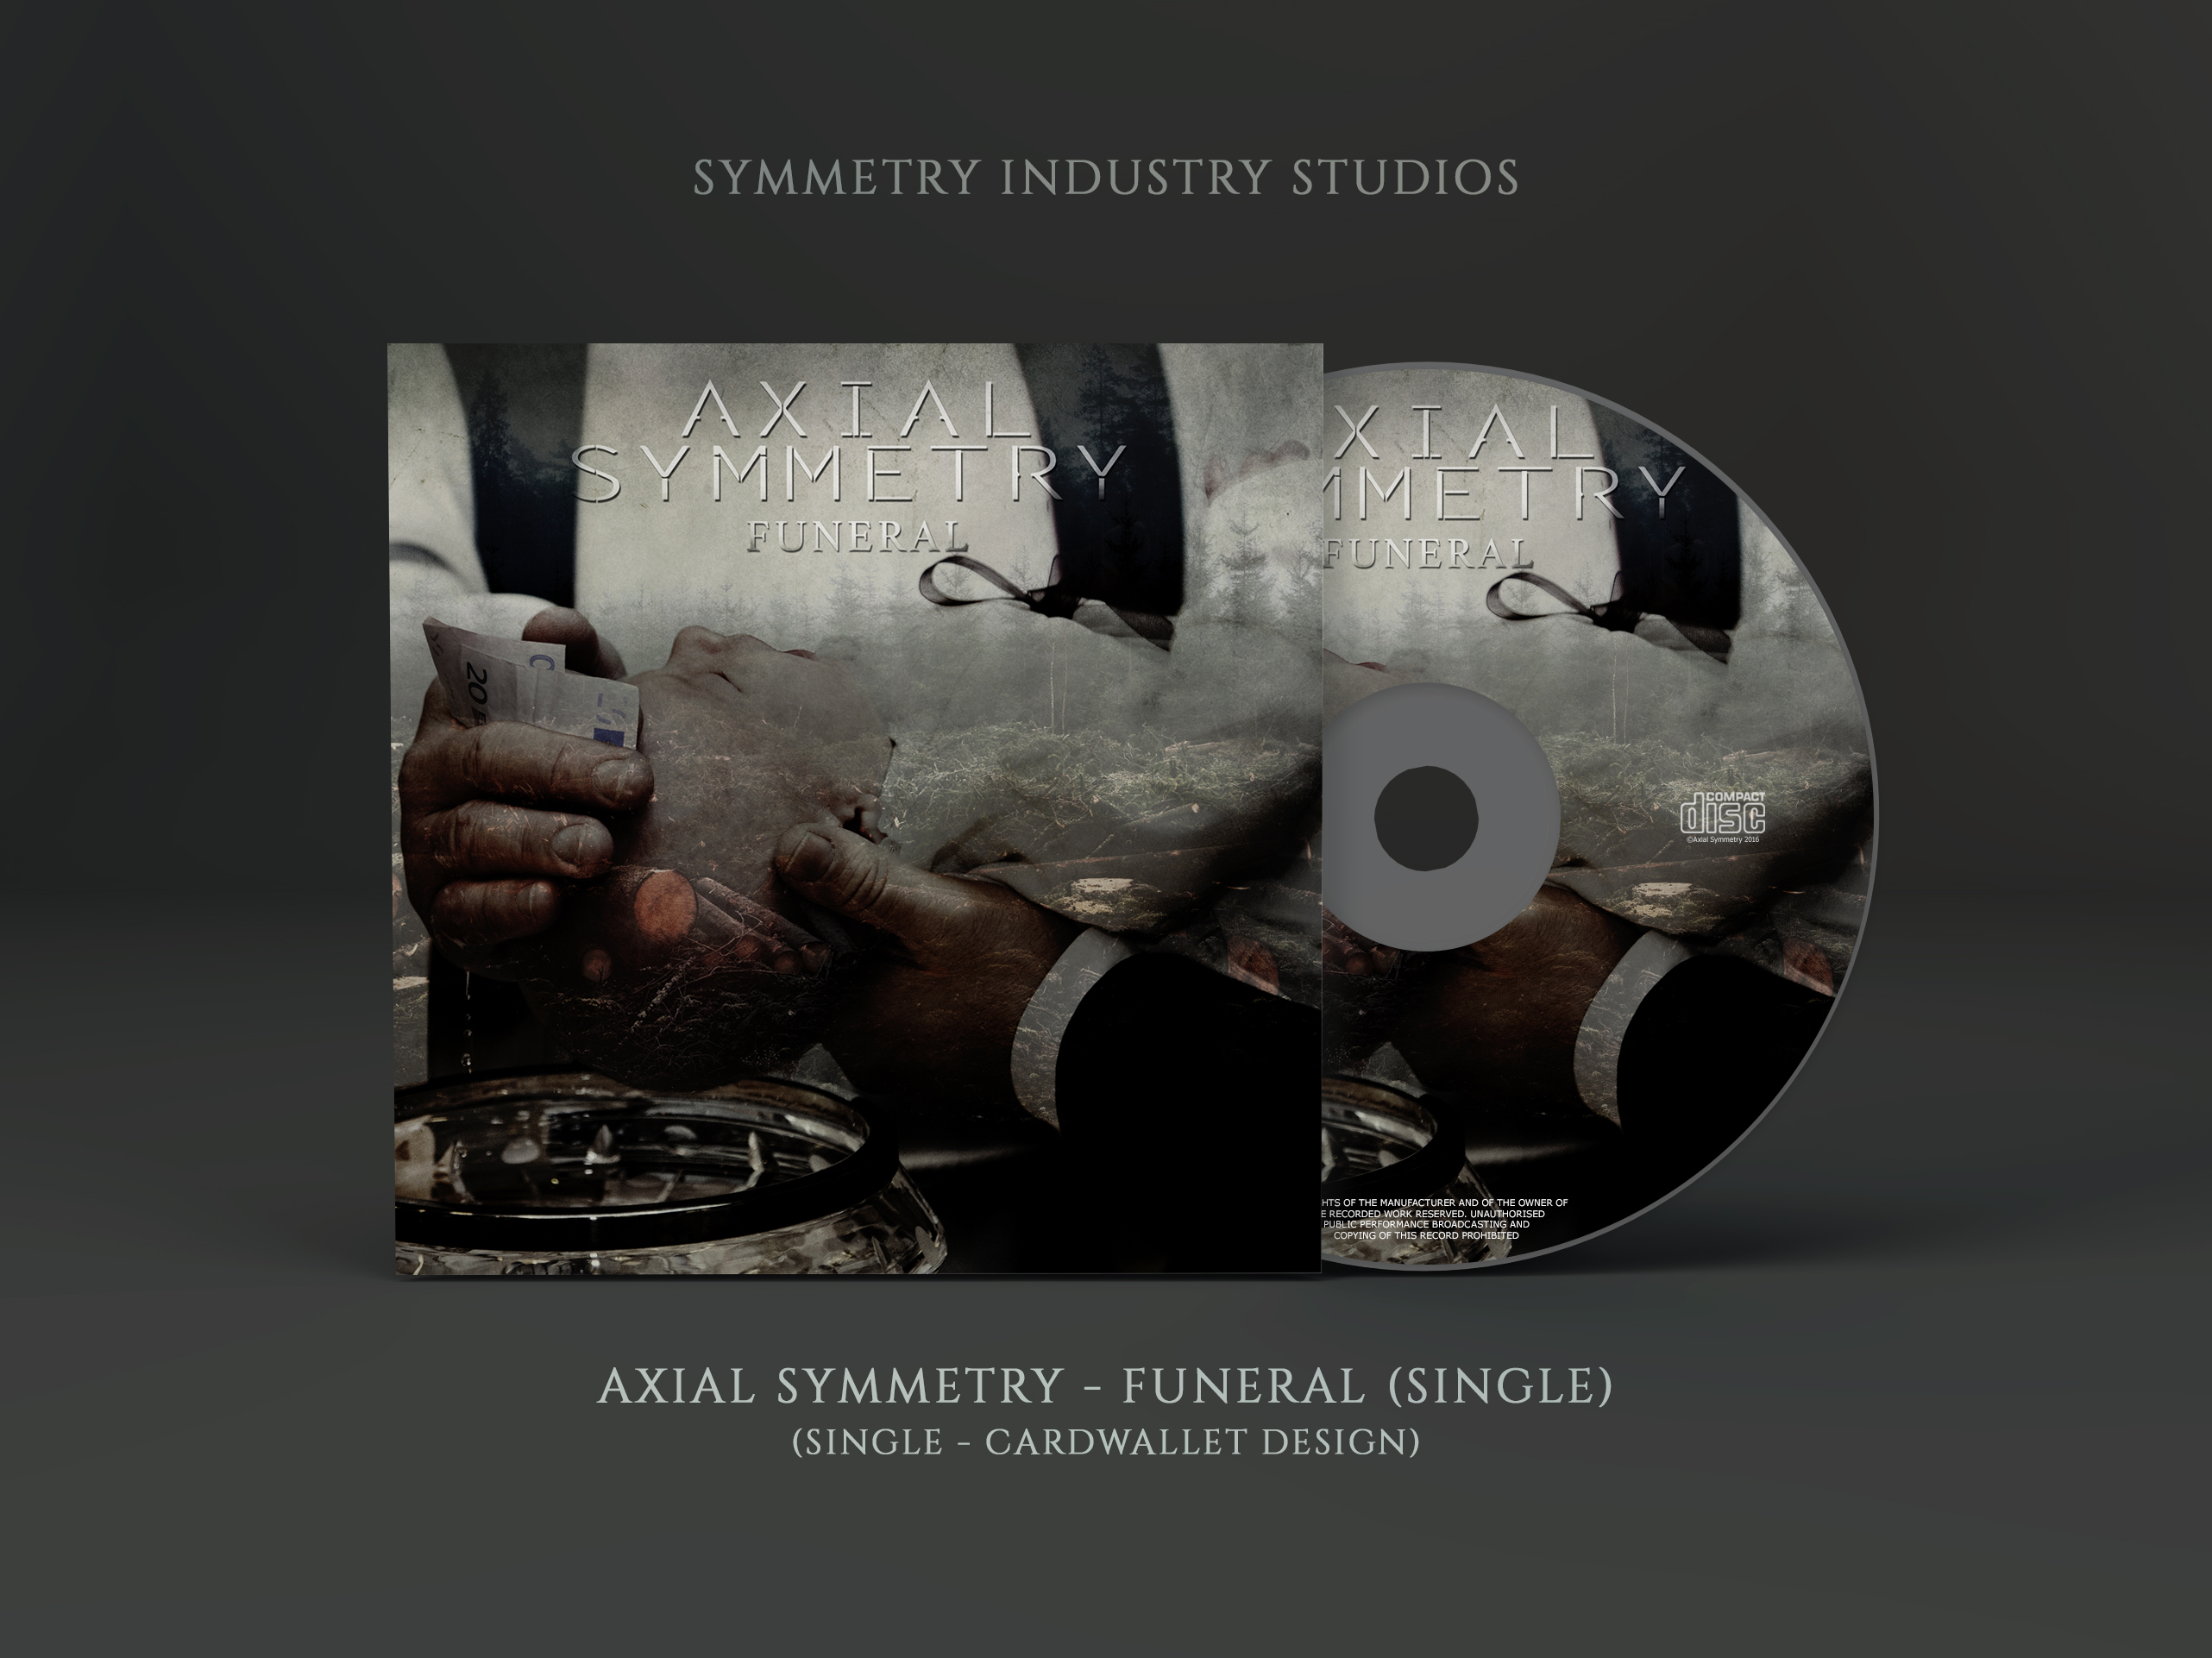 Axial Symmetry - Funeral (Mockup)